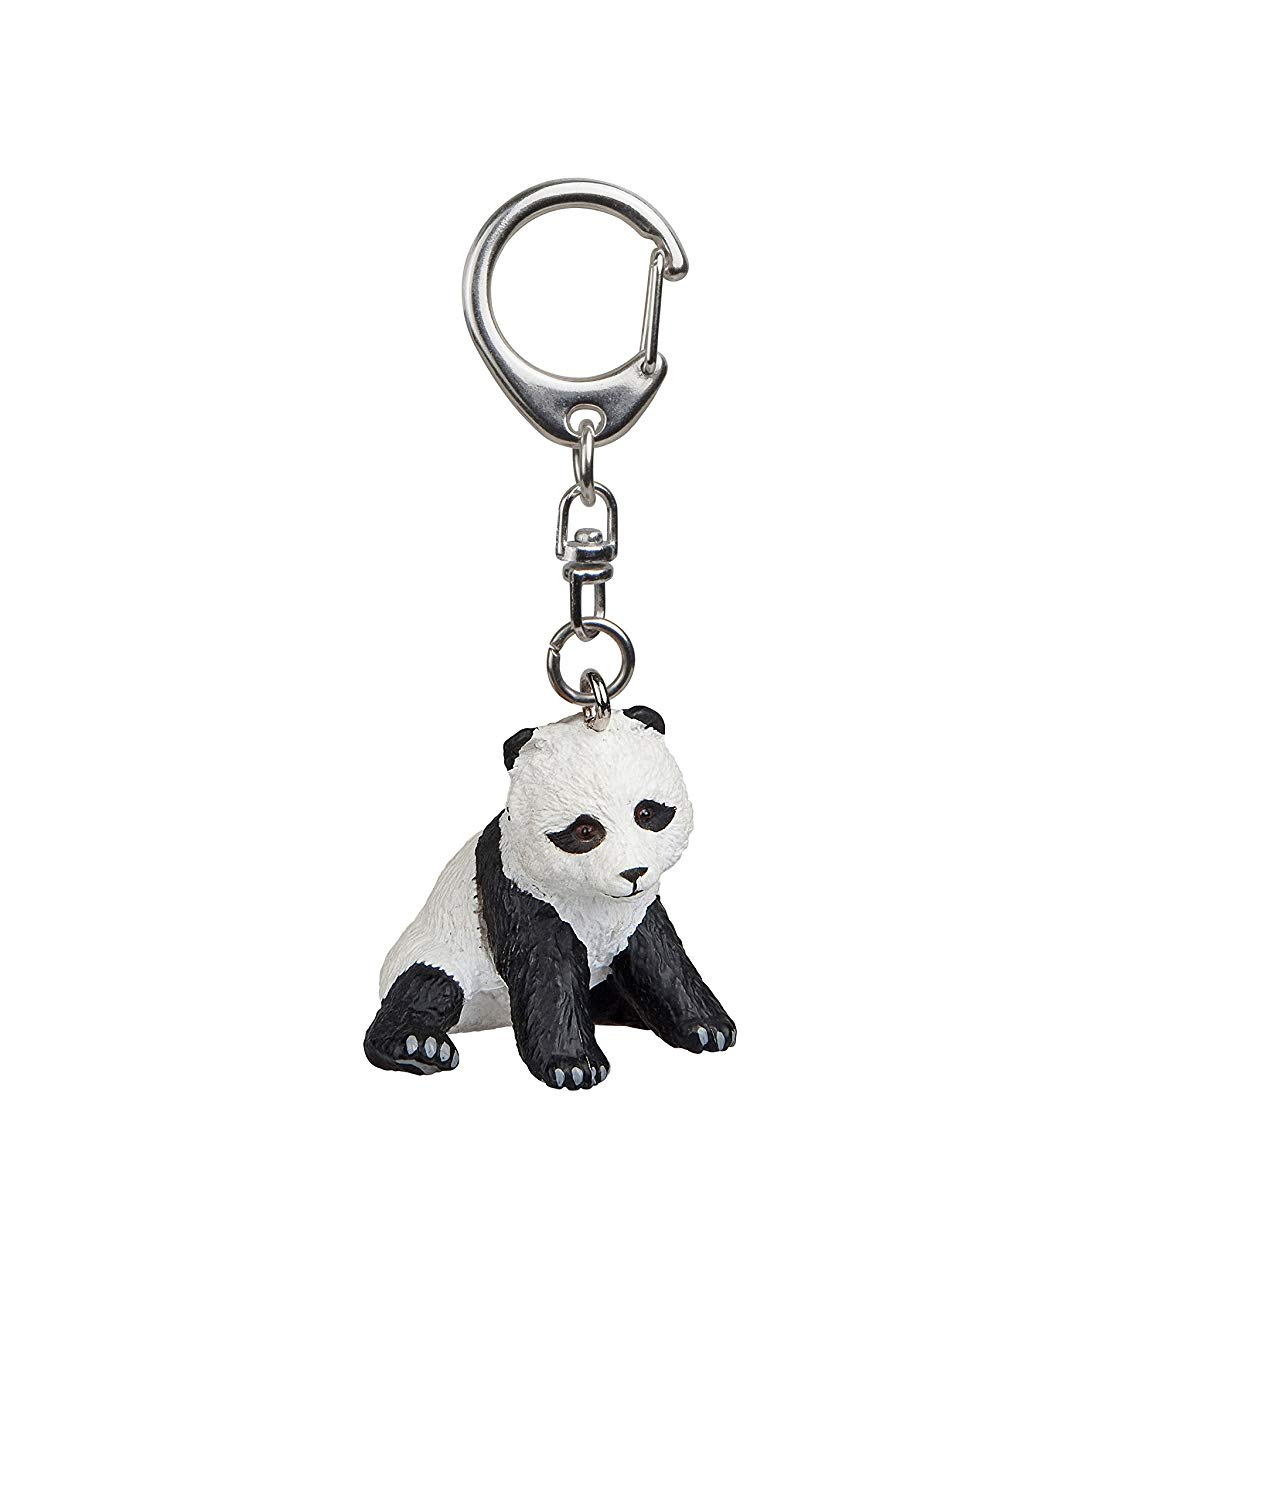 "Papo 02216 ""Sitting Baby Panda Key Ring"